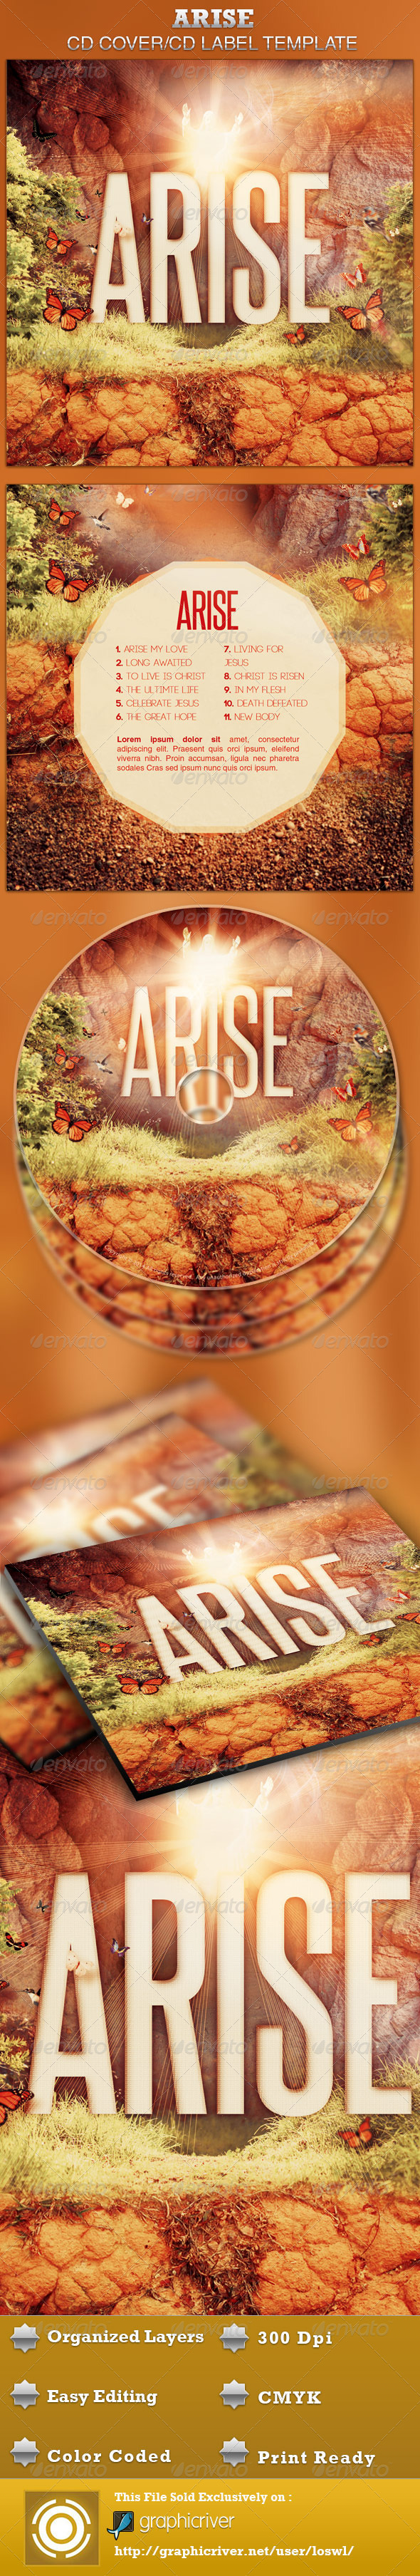 Arise CD Artwork Template - CD & DVD artwork Print Templates